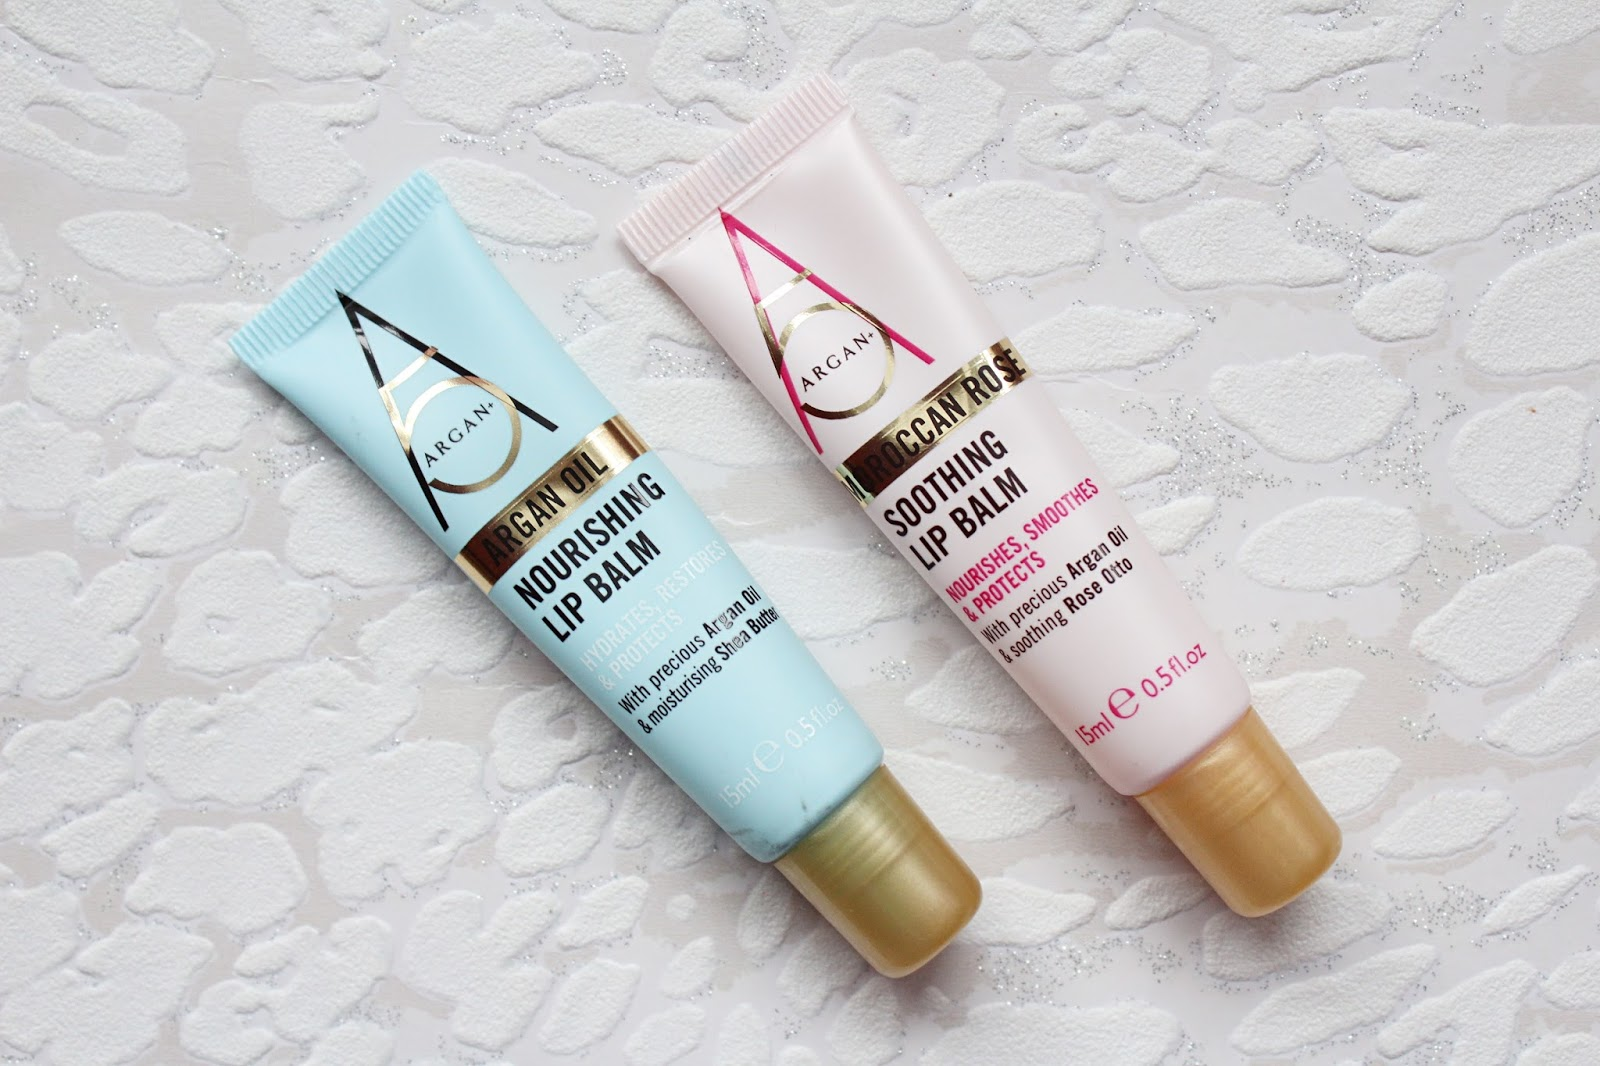 Argan 5 Lip Balms Review